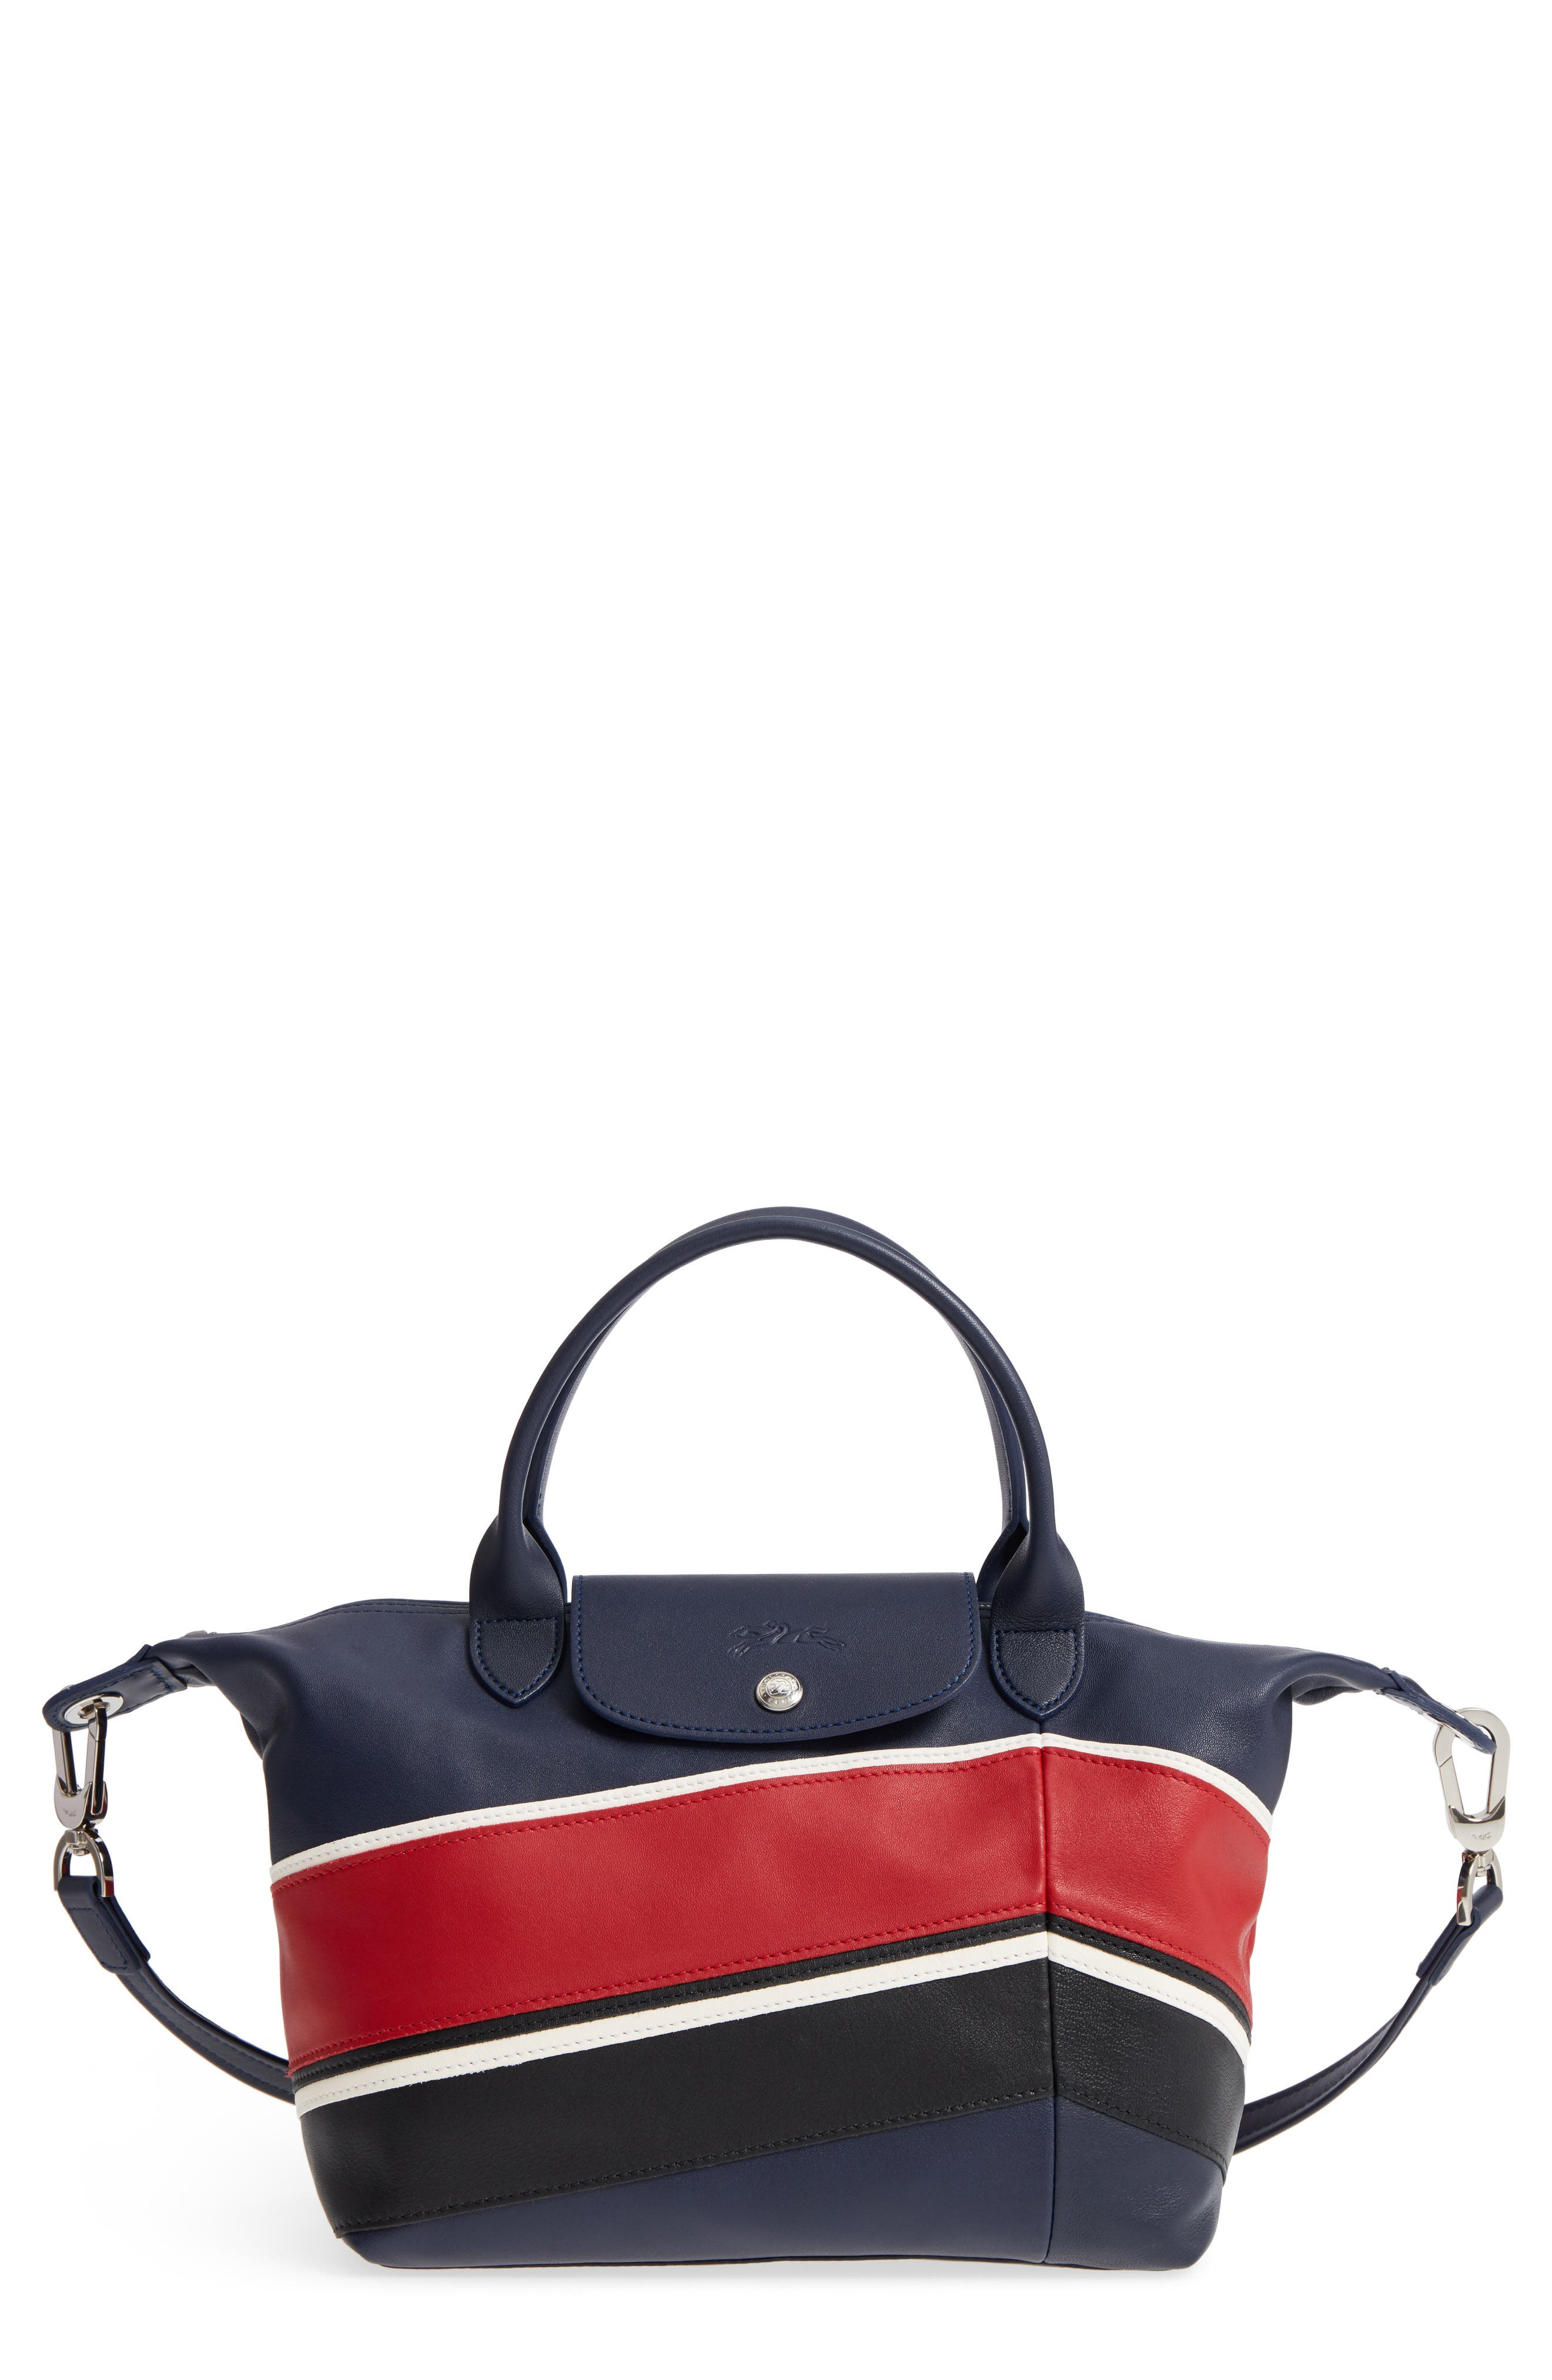 Small Le Pliage Cuir - Chevron Top Handle Leather Tote,                             Main thumbnail 1, color,                             622